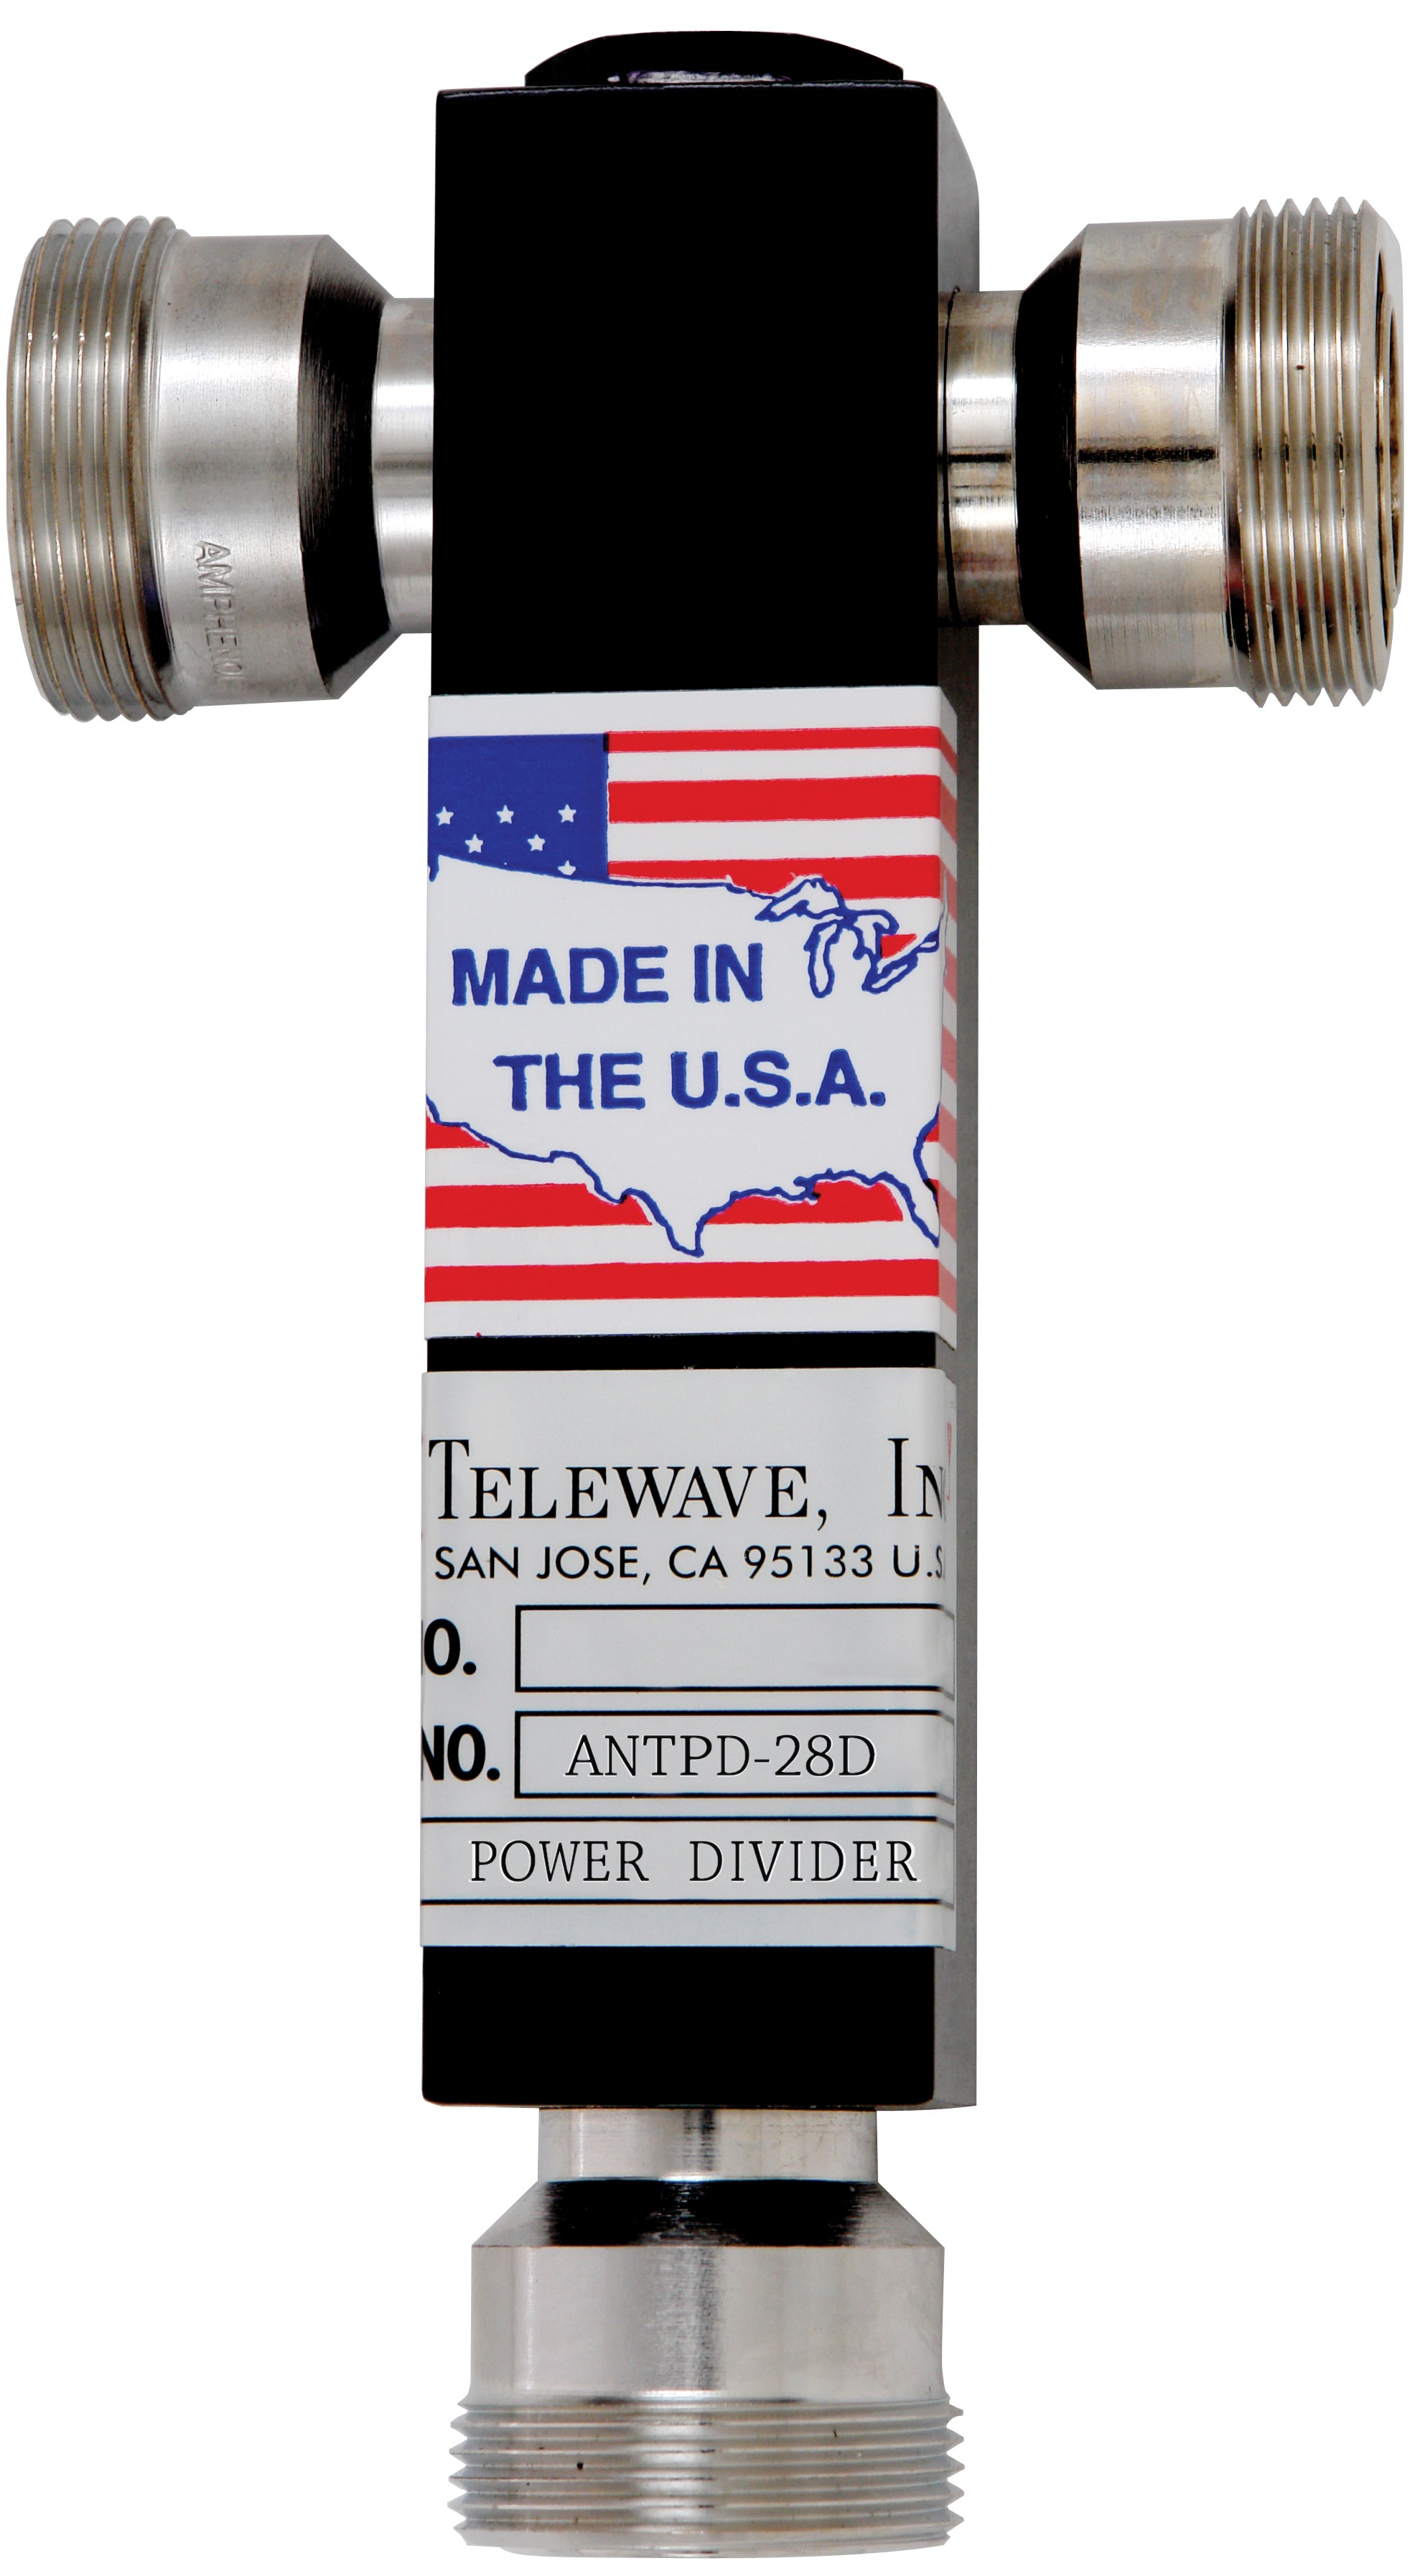 Rf Power Divider 7 16 Din F Connectors Telewave Inc 2 Mhz Frequency Standard With Dividers